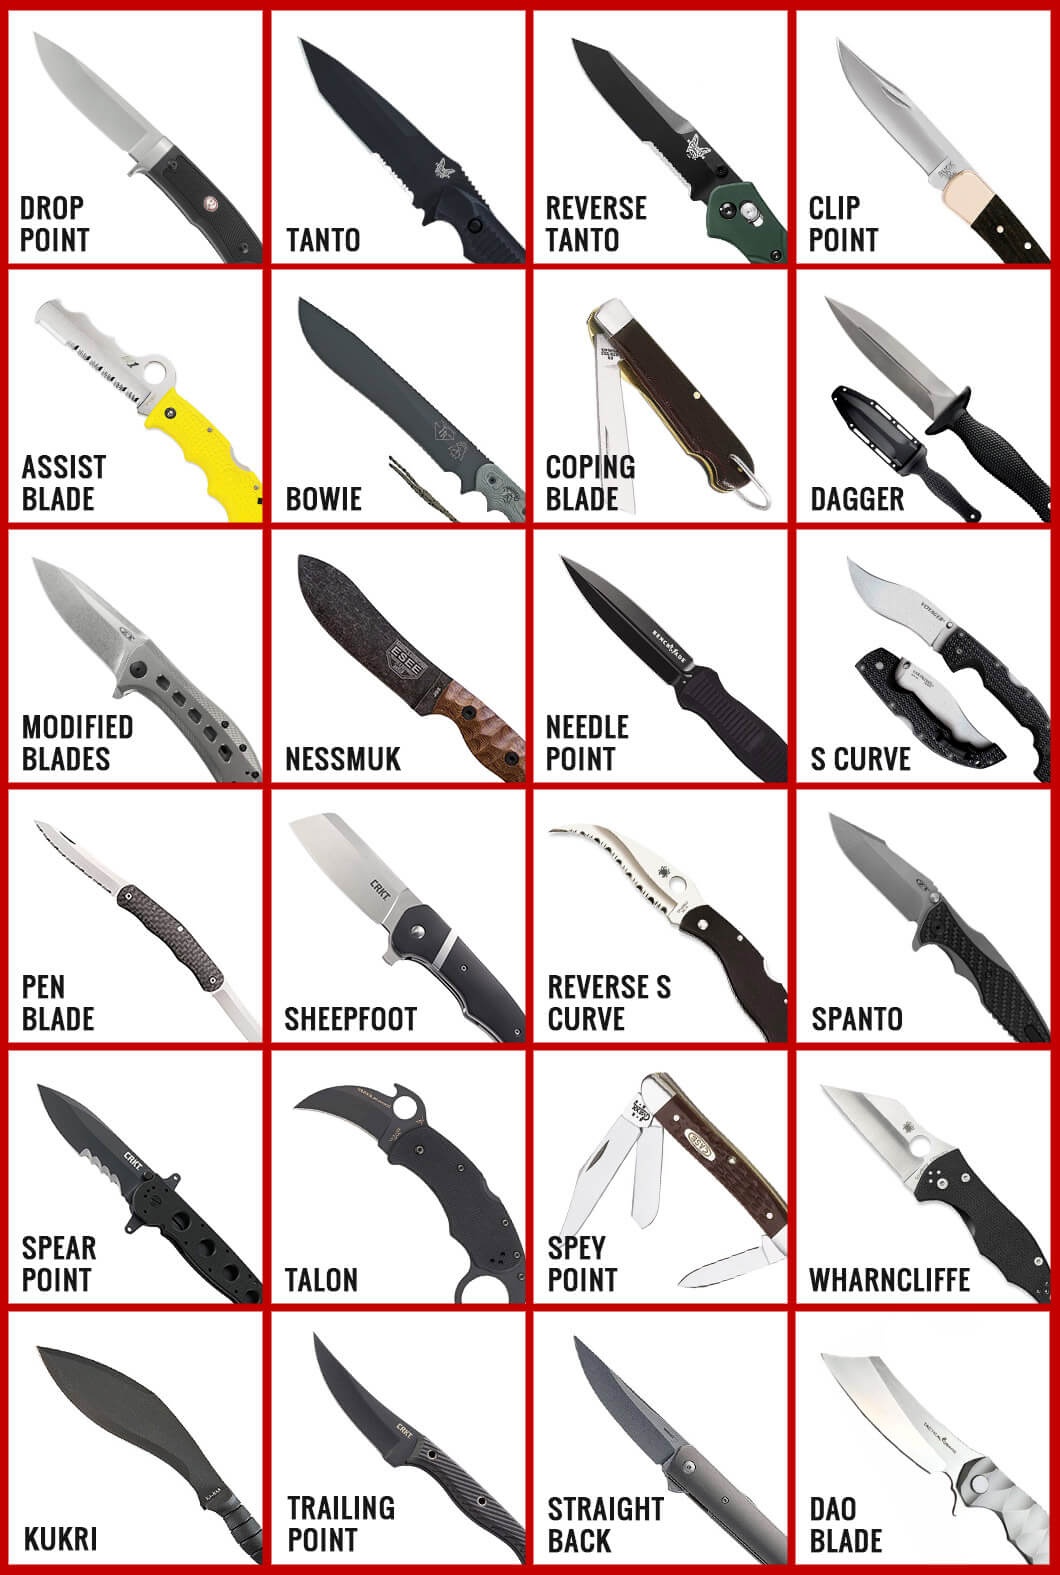 Knife Blade Types and Shapes Chart